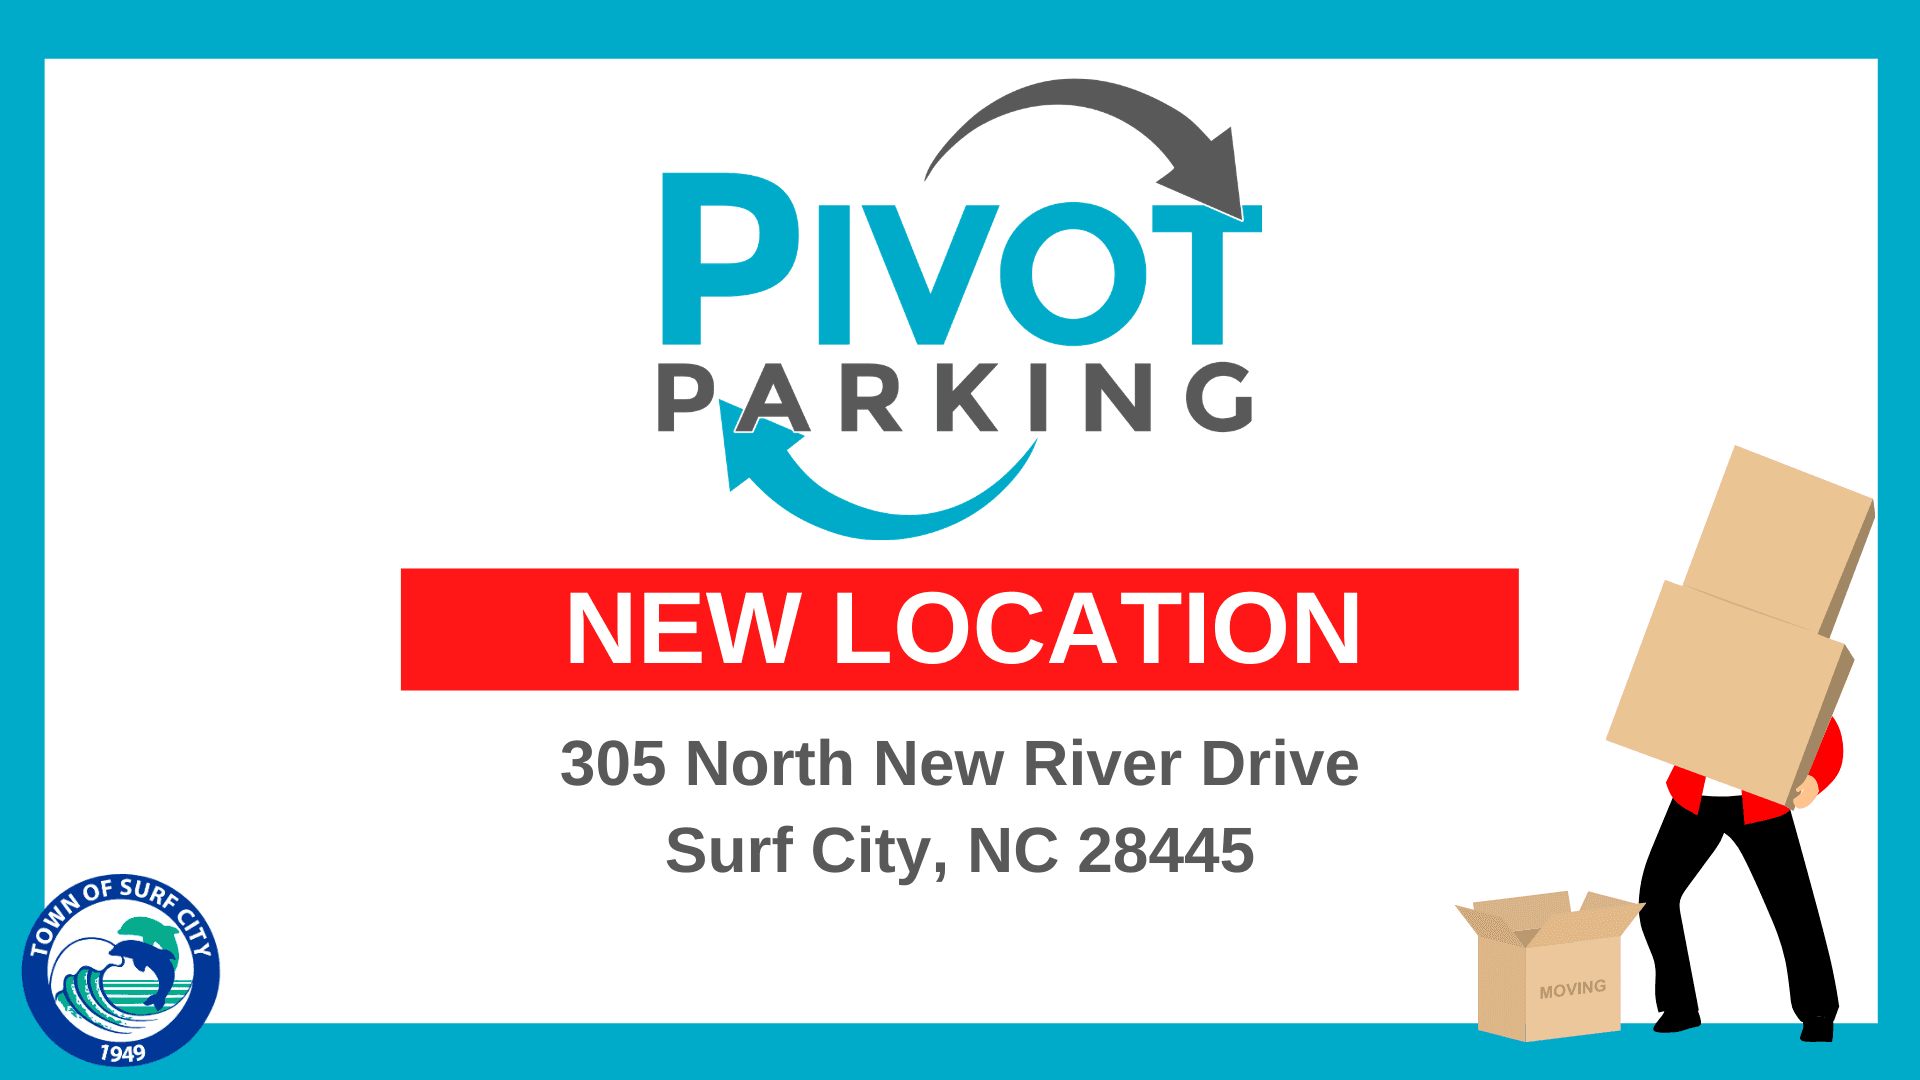 Pivot - New Location (1)